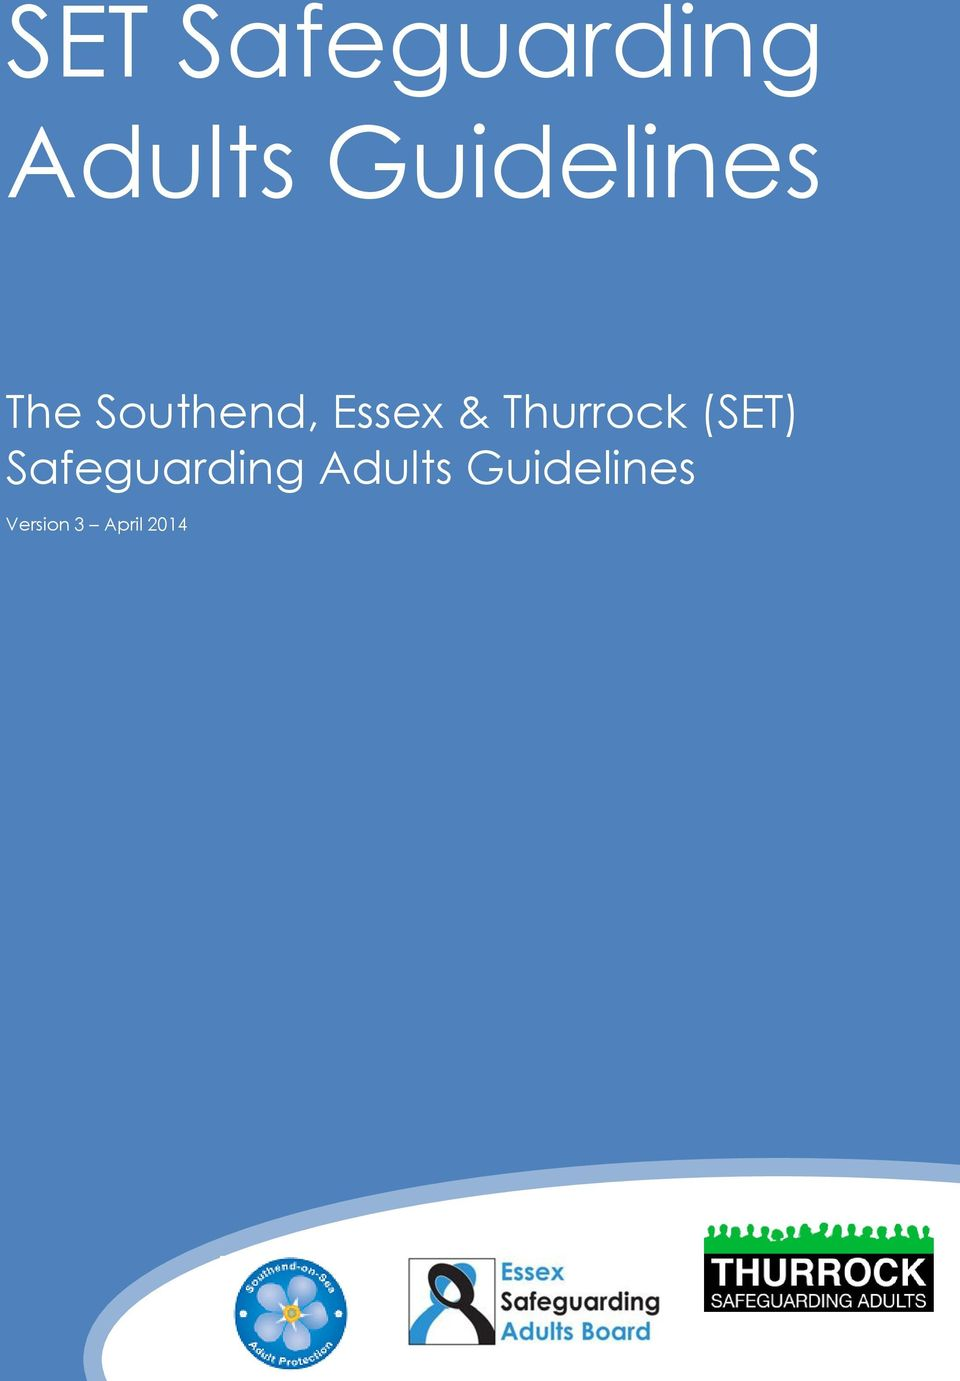 & Thurrock (SET) Safeguarding